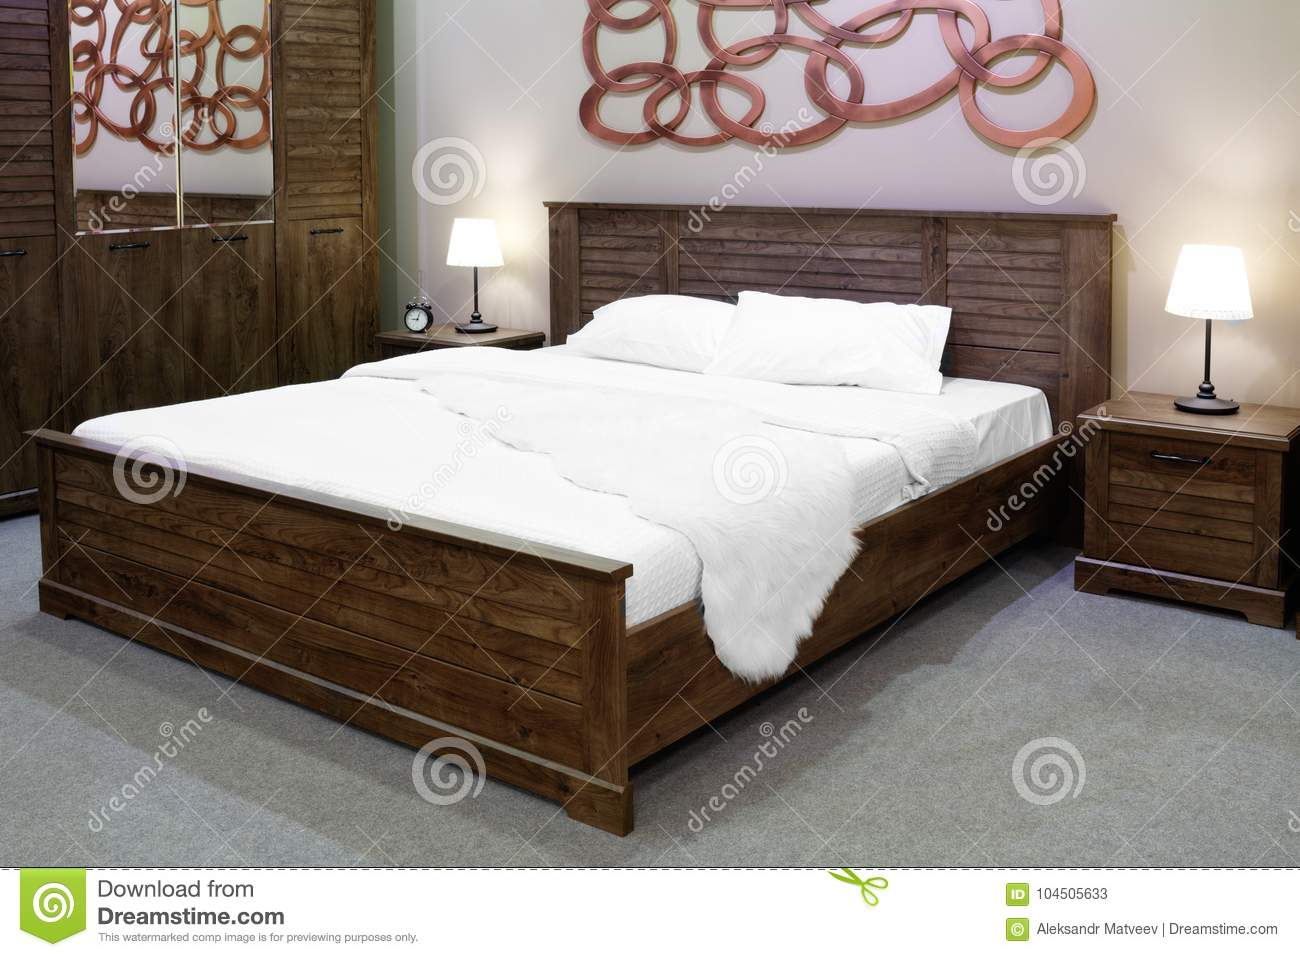 Luxury Modern And Wooden Rustic Style Bedroom In Brown And Beige Tones,  Interior Of A